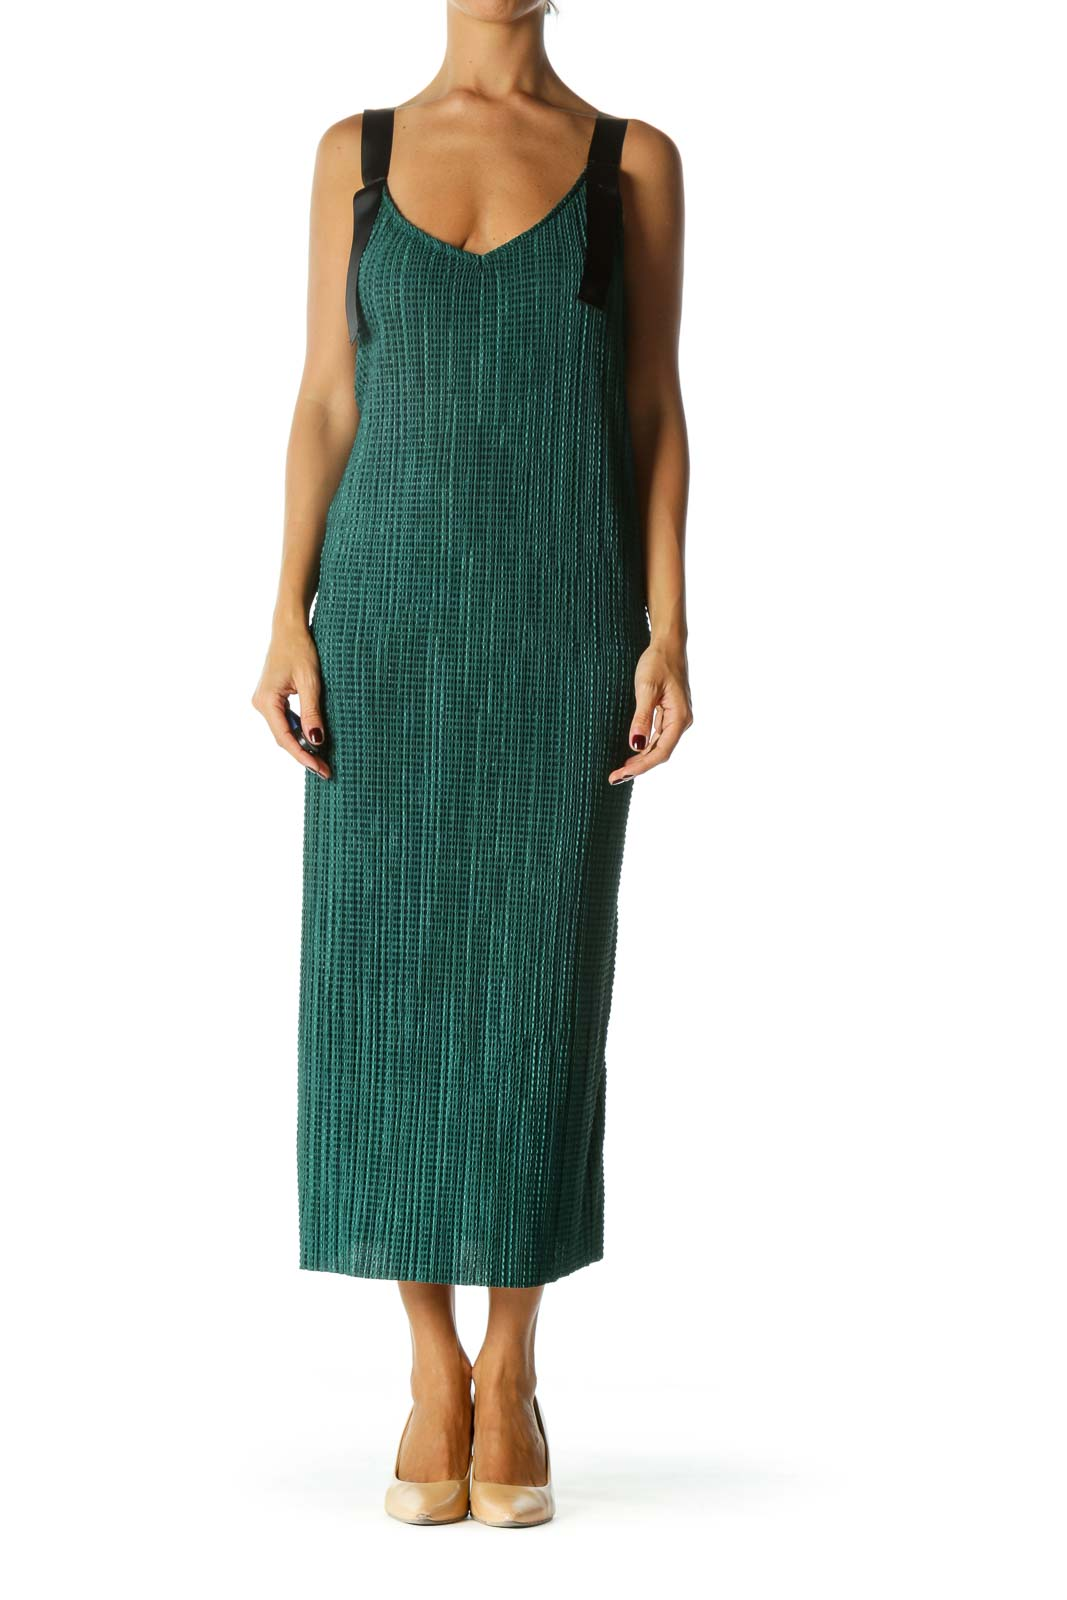 Emerald Green Black Knot Straps V-Neck Waffle Texture Stretch Dress